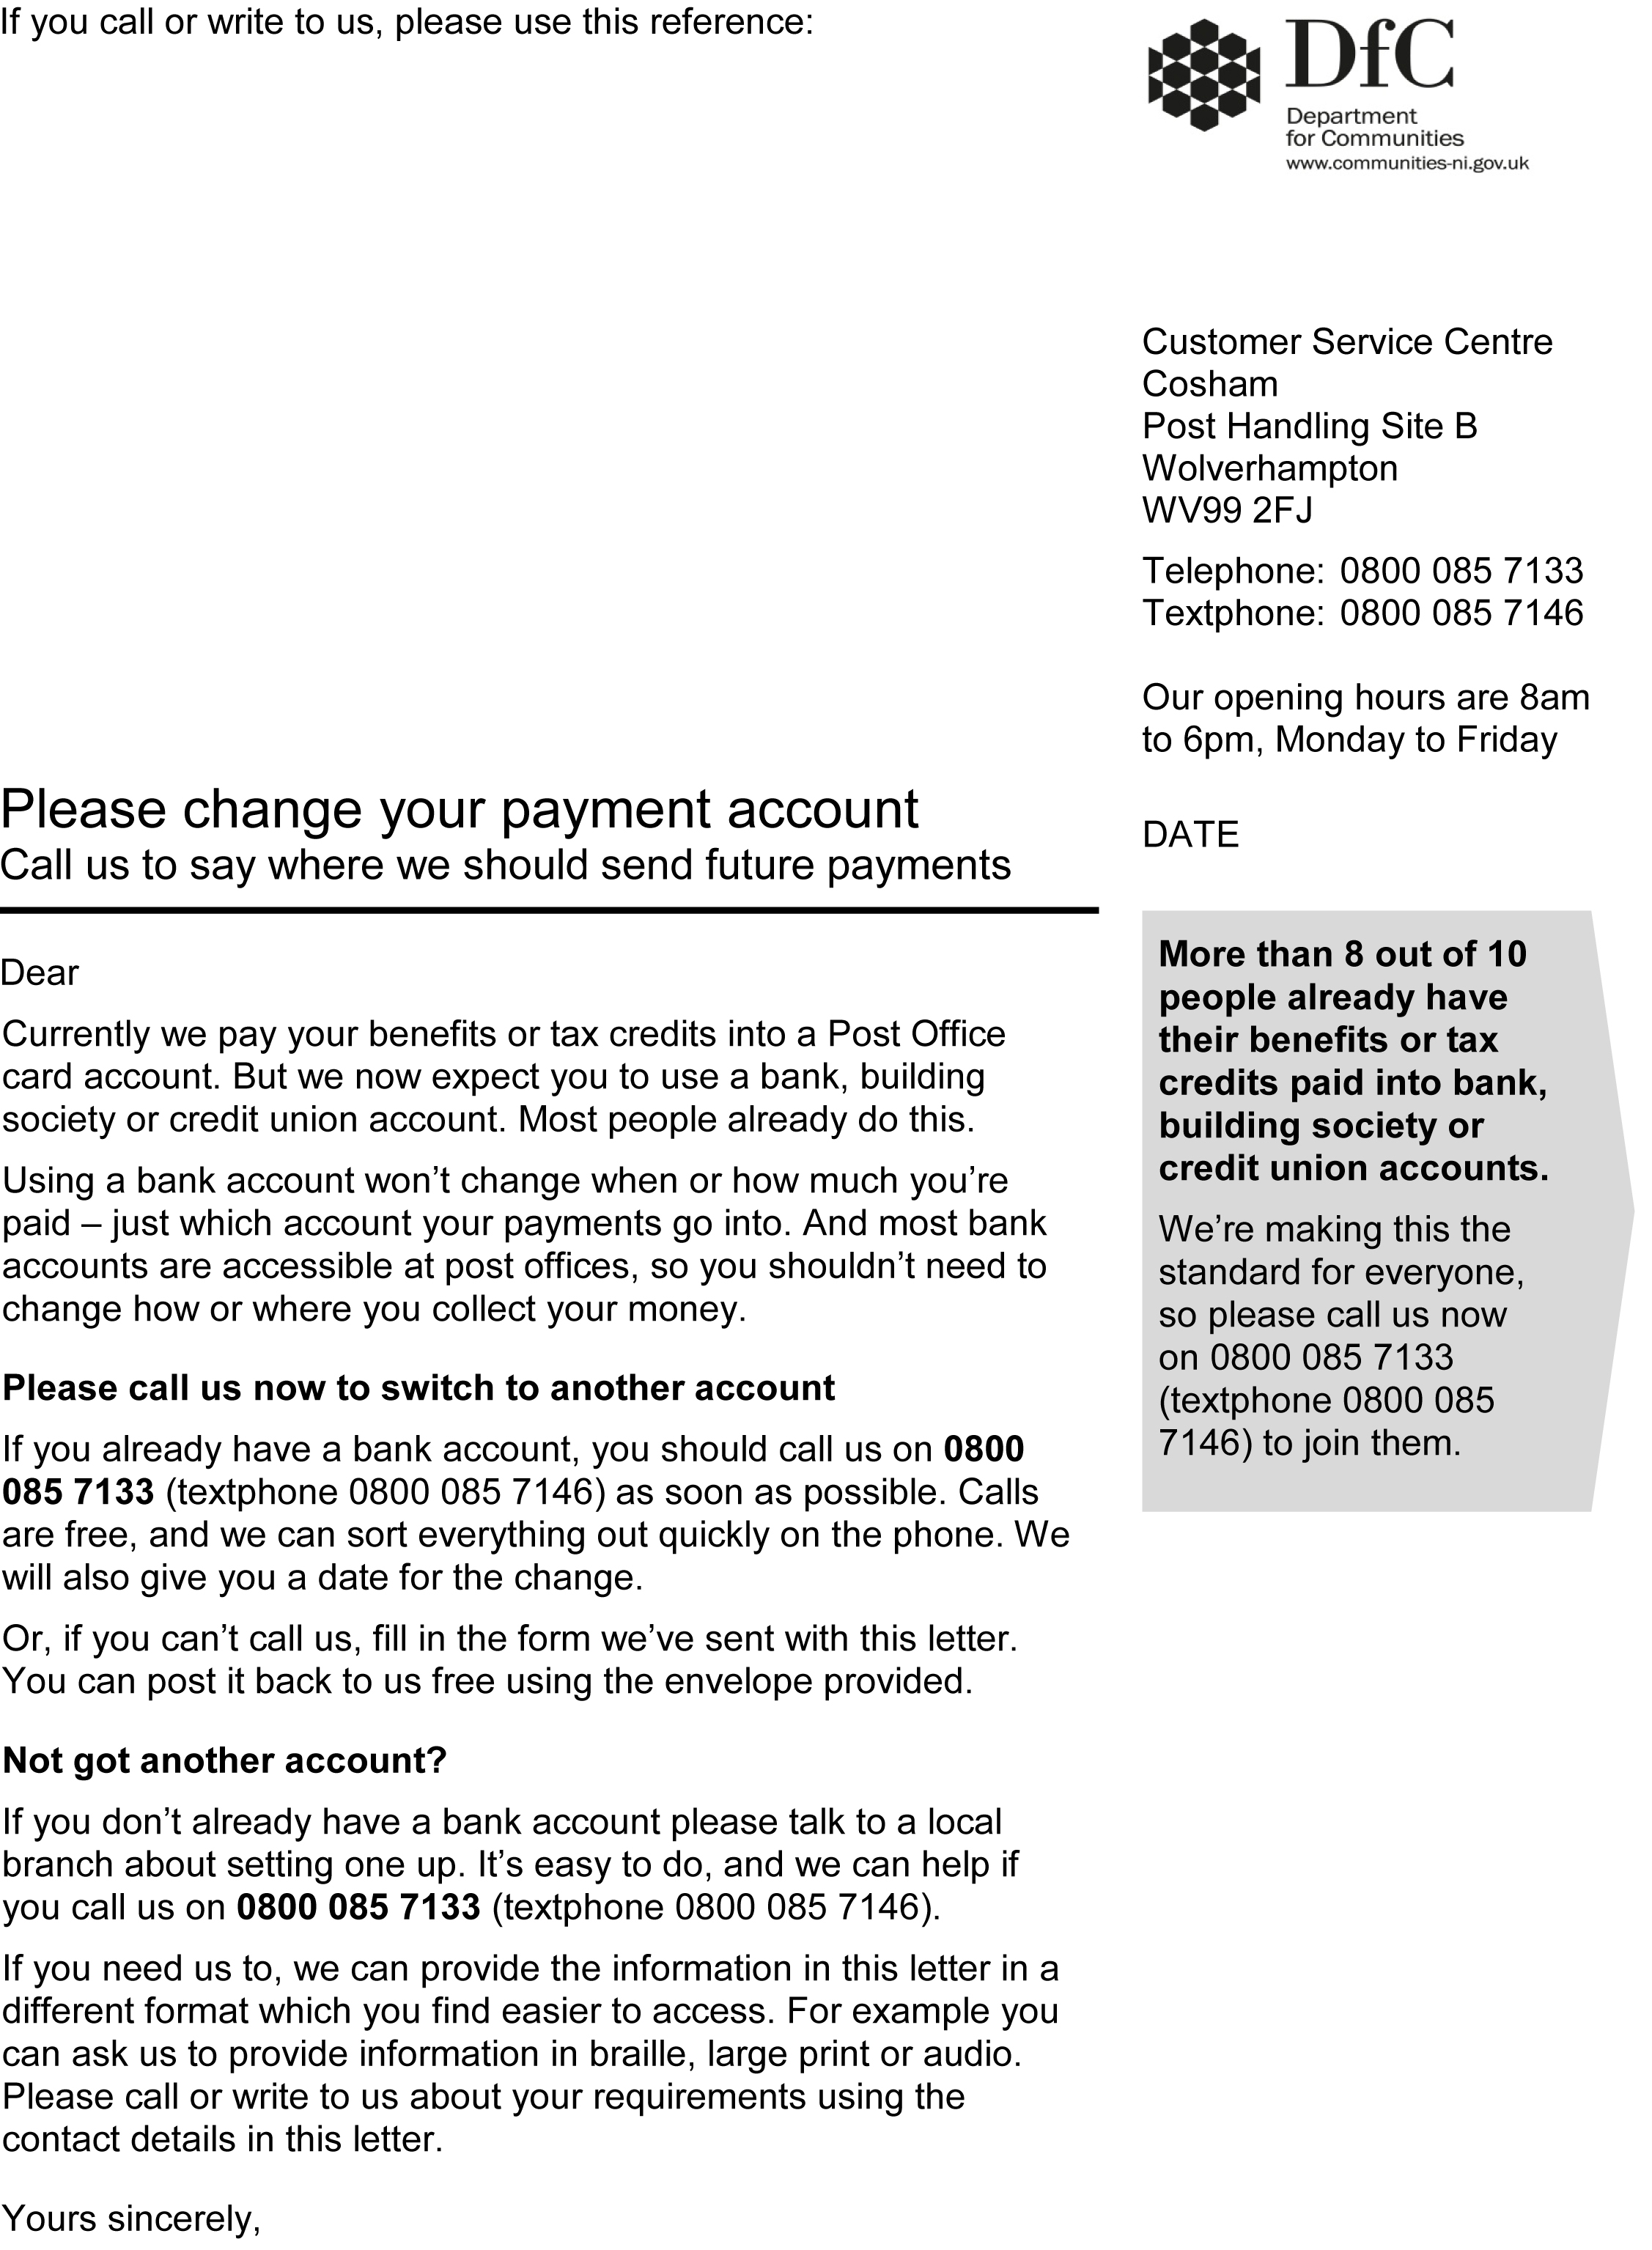 Student finance ni cover letter